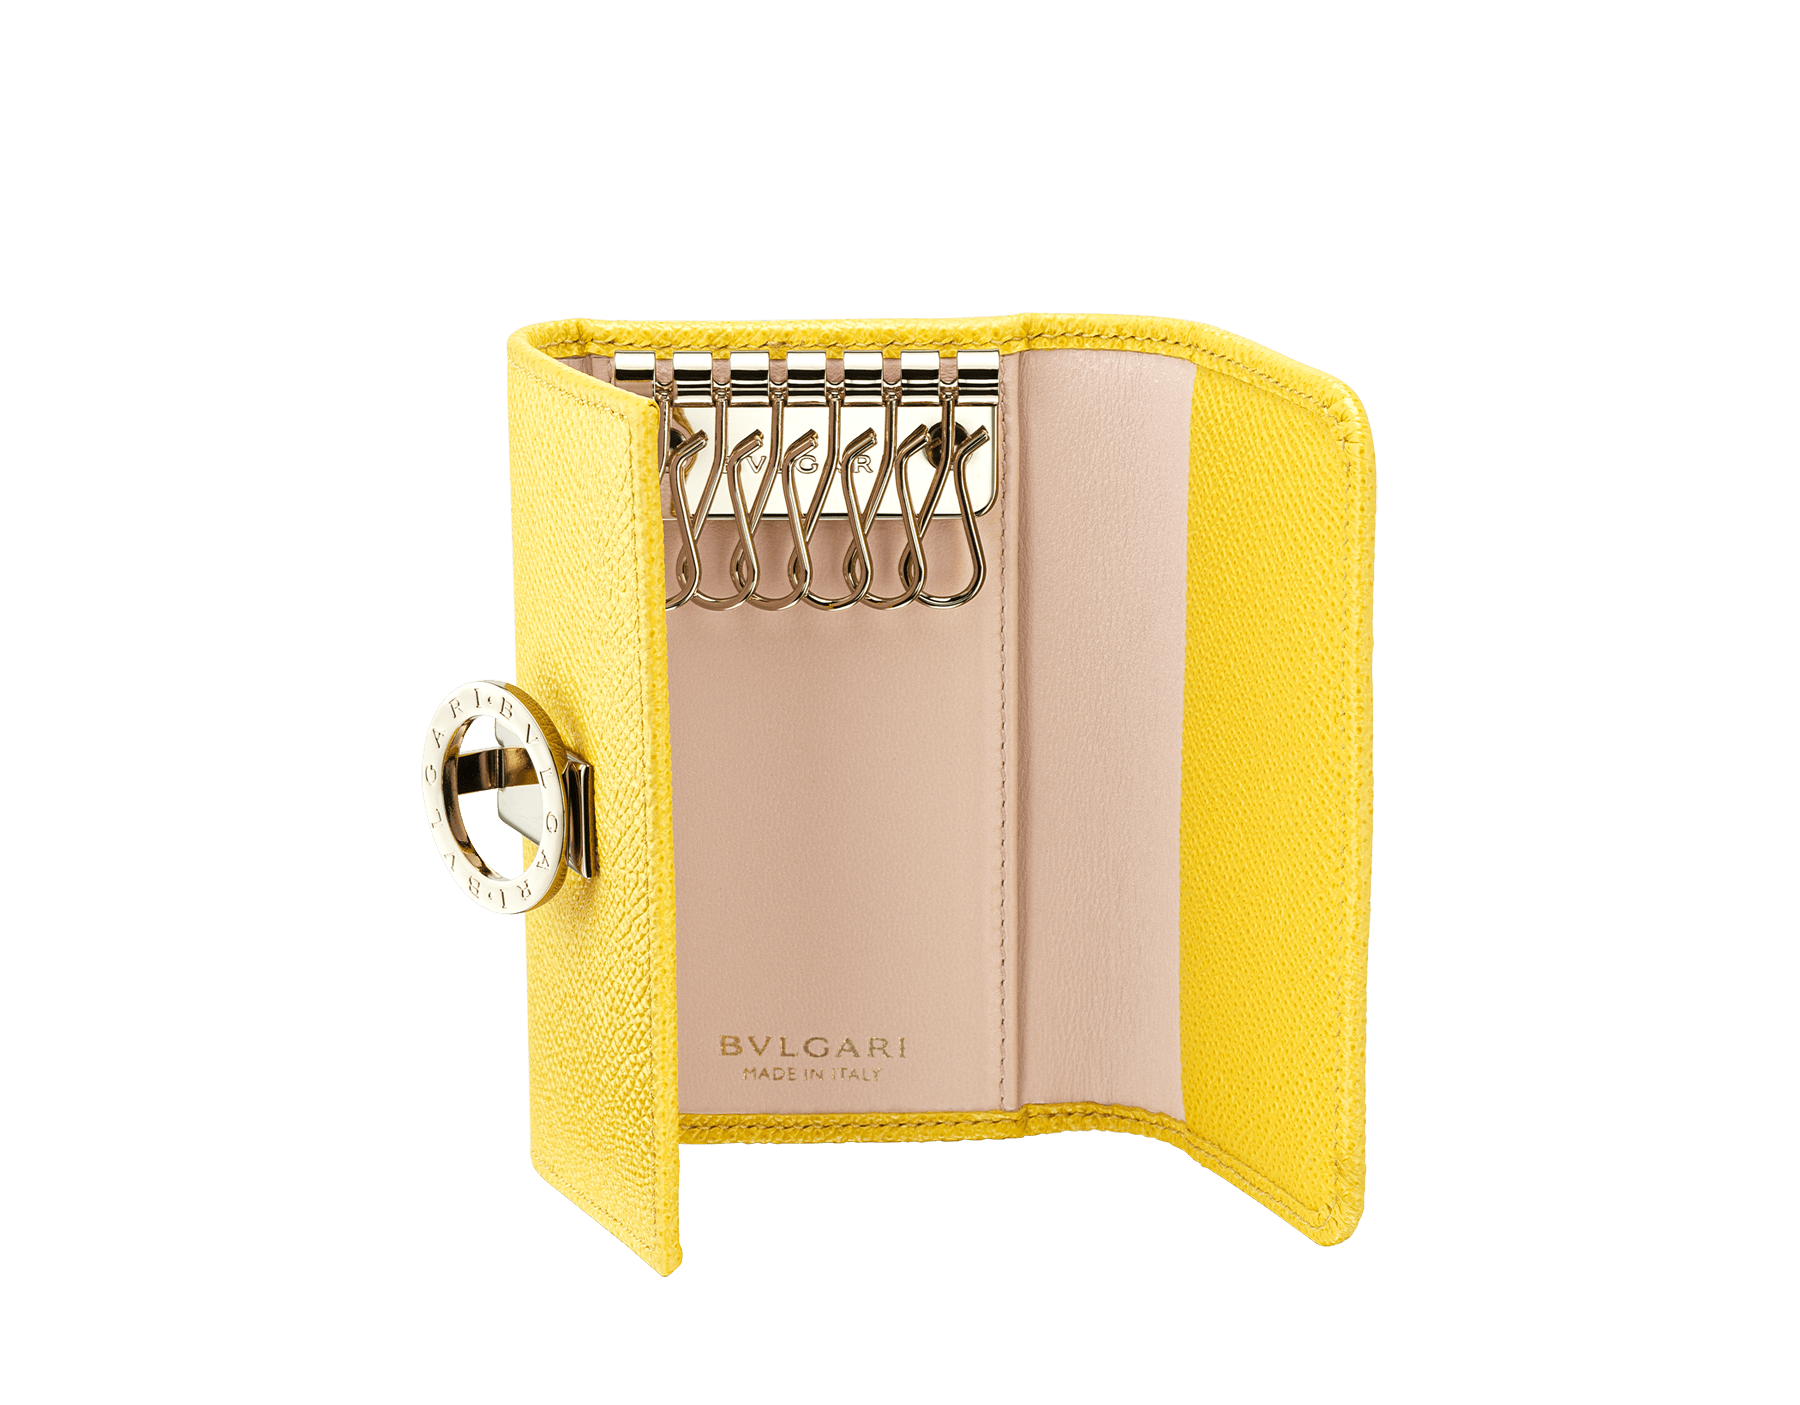 """BVLGARI BVLGARI"" small key holder in mint bright grain calf leather and taffy quartz soft nappa leather. Iconic logo clip closure in light gold plated brass. 579-KEYHOLDER-Sa image 2"